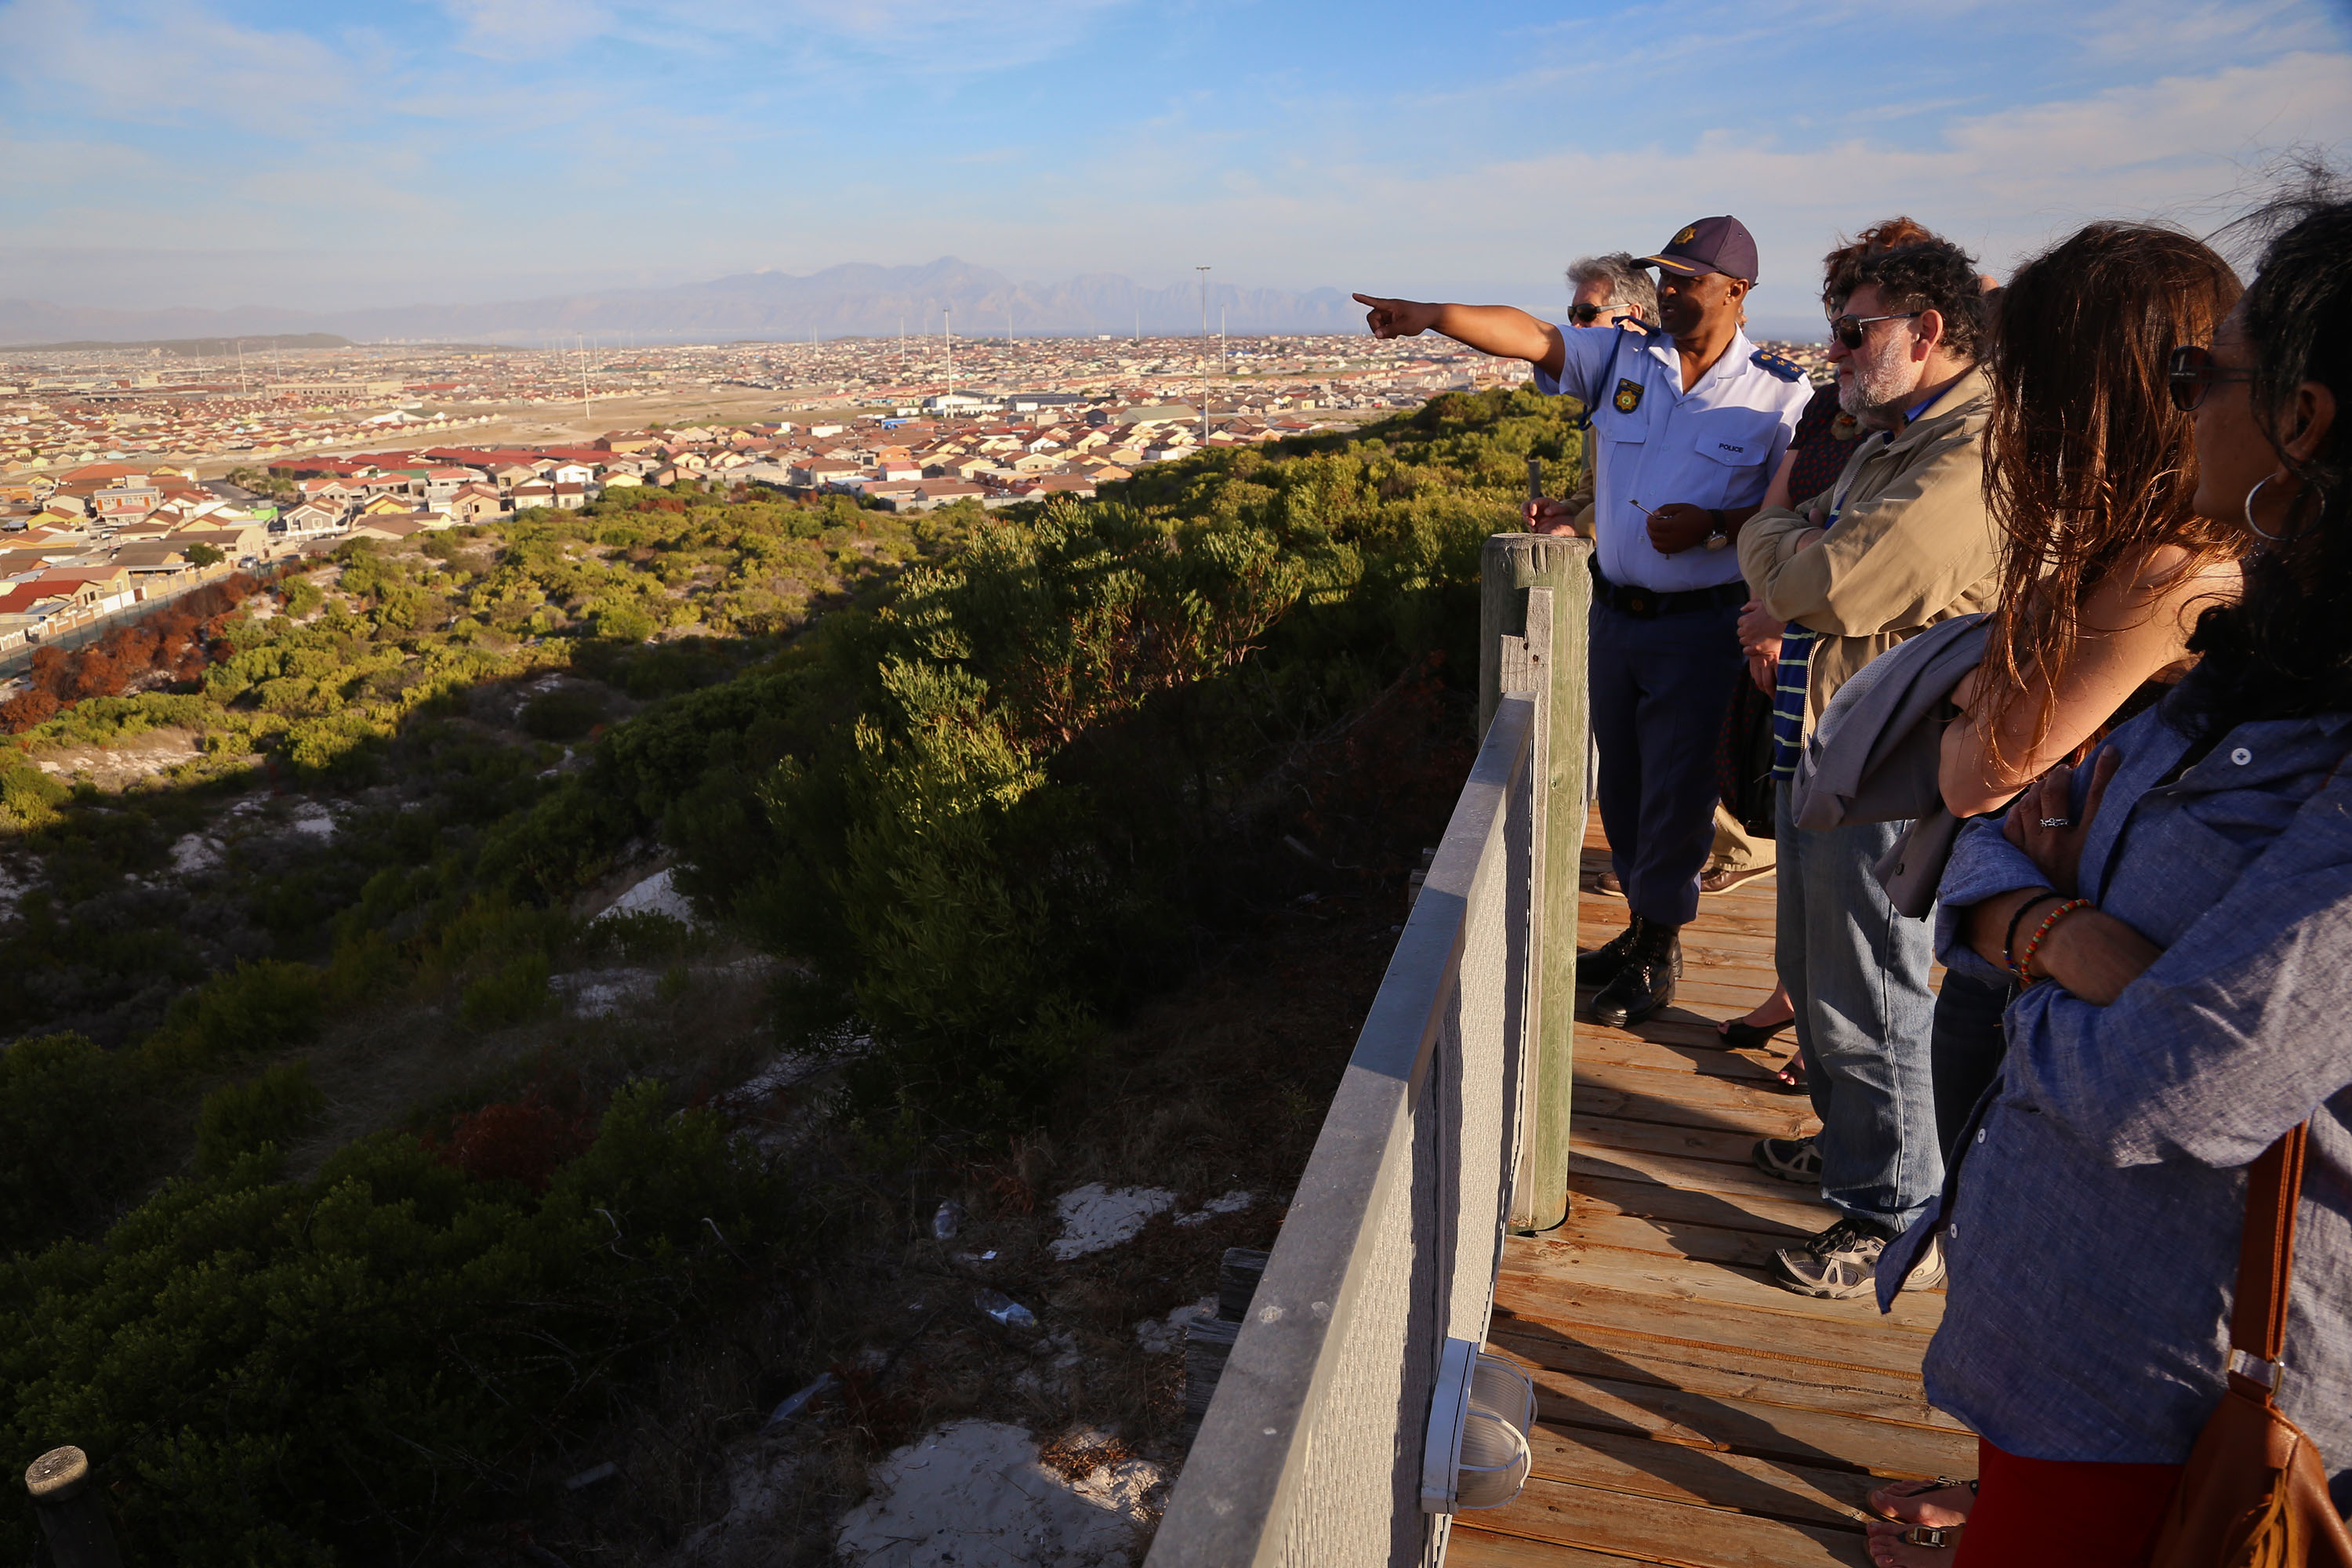 UN experts with police at the Lookout Hill in Khayelitsha